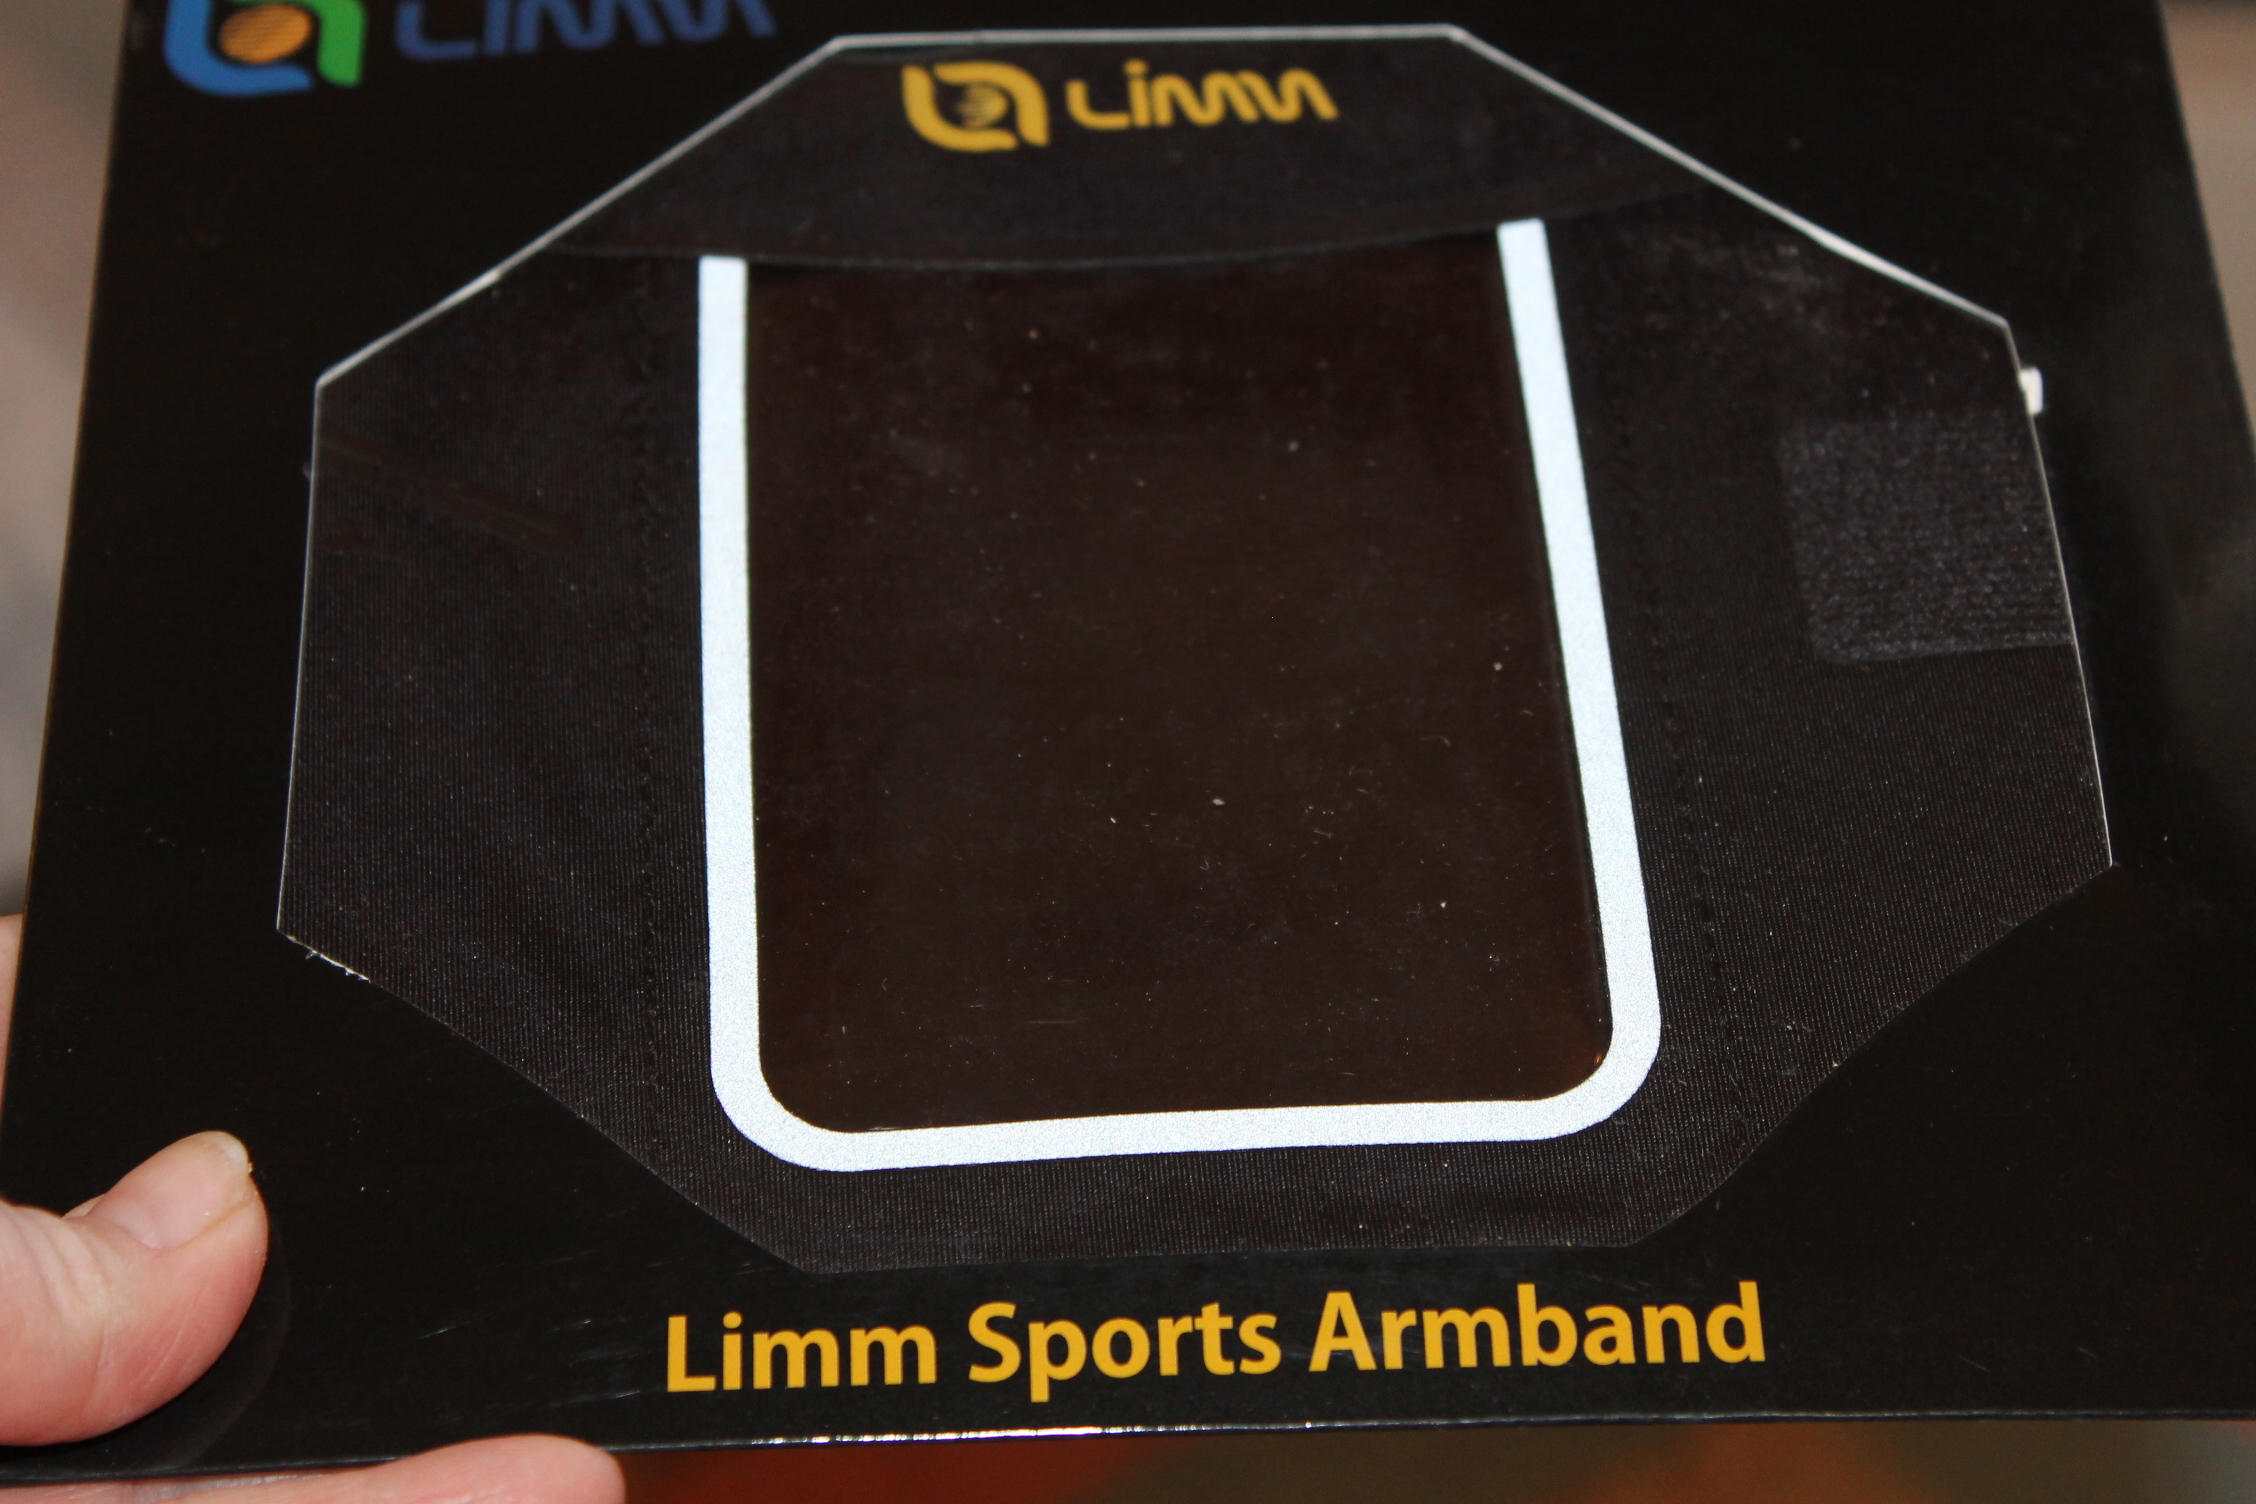 Stay active with a Limm Sports Armband